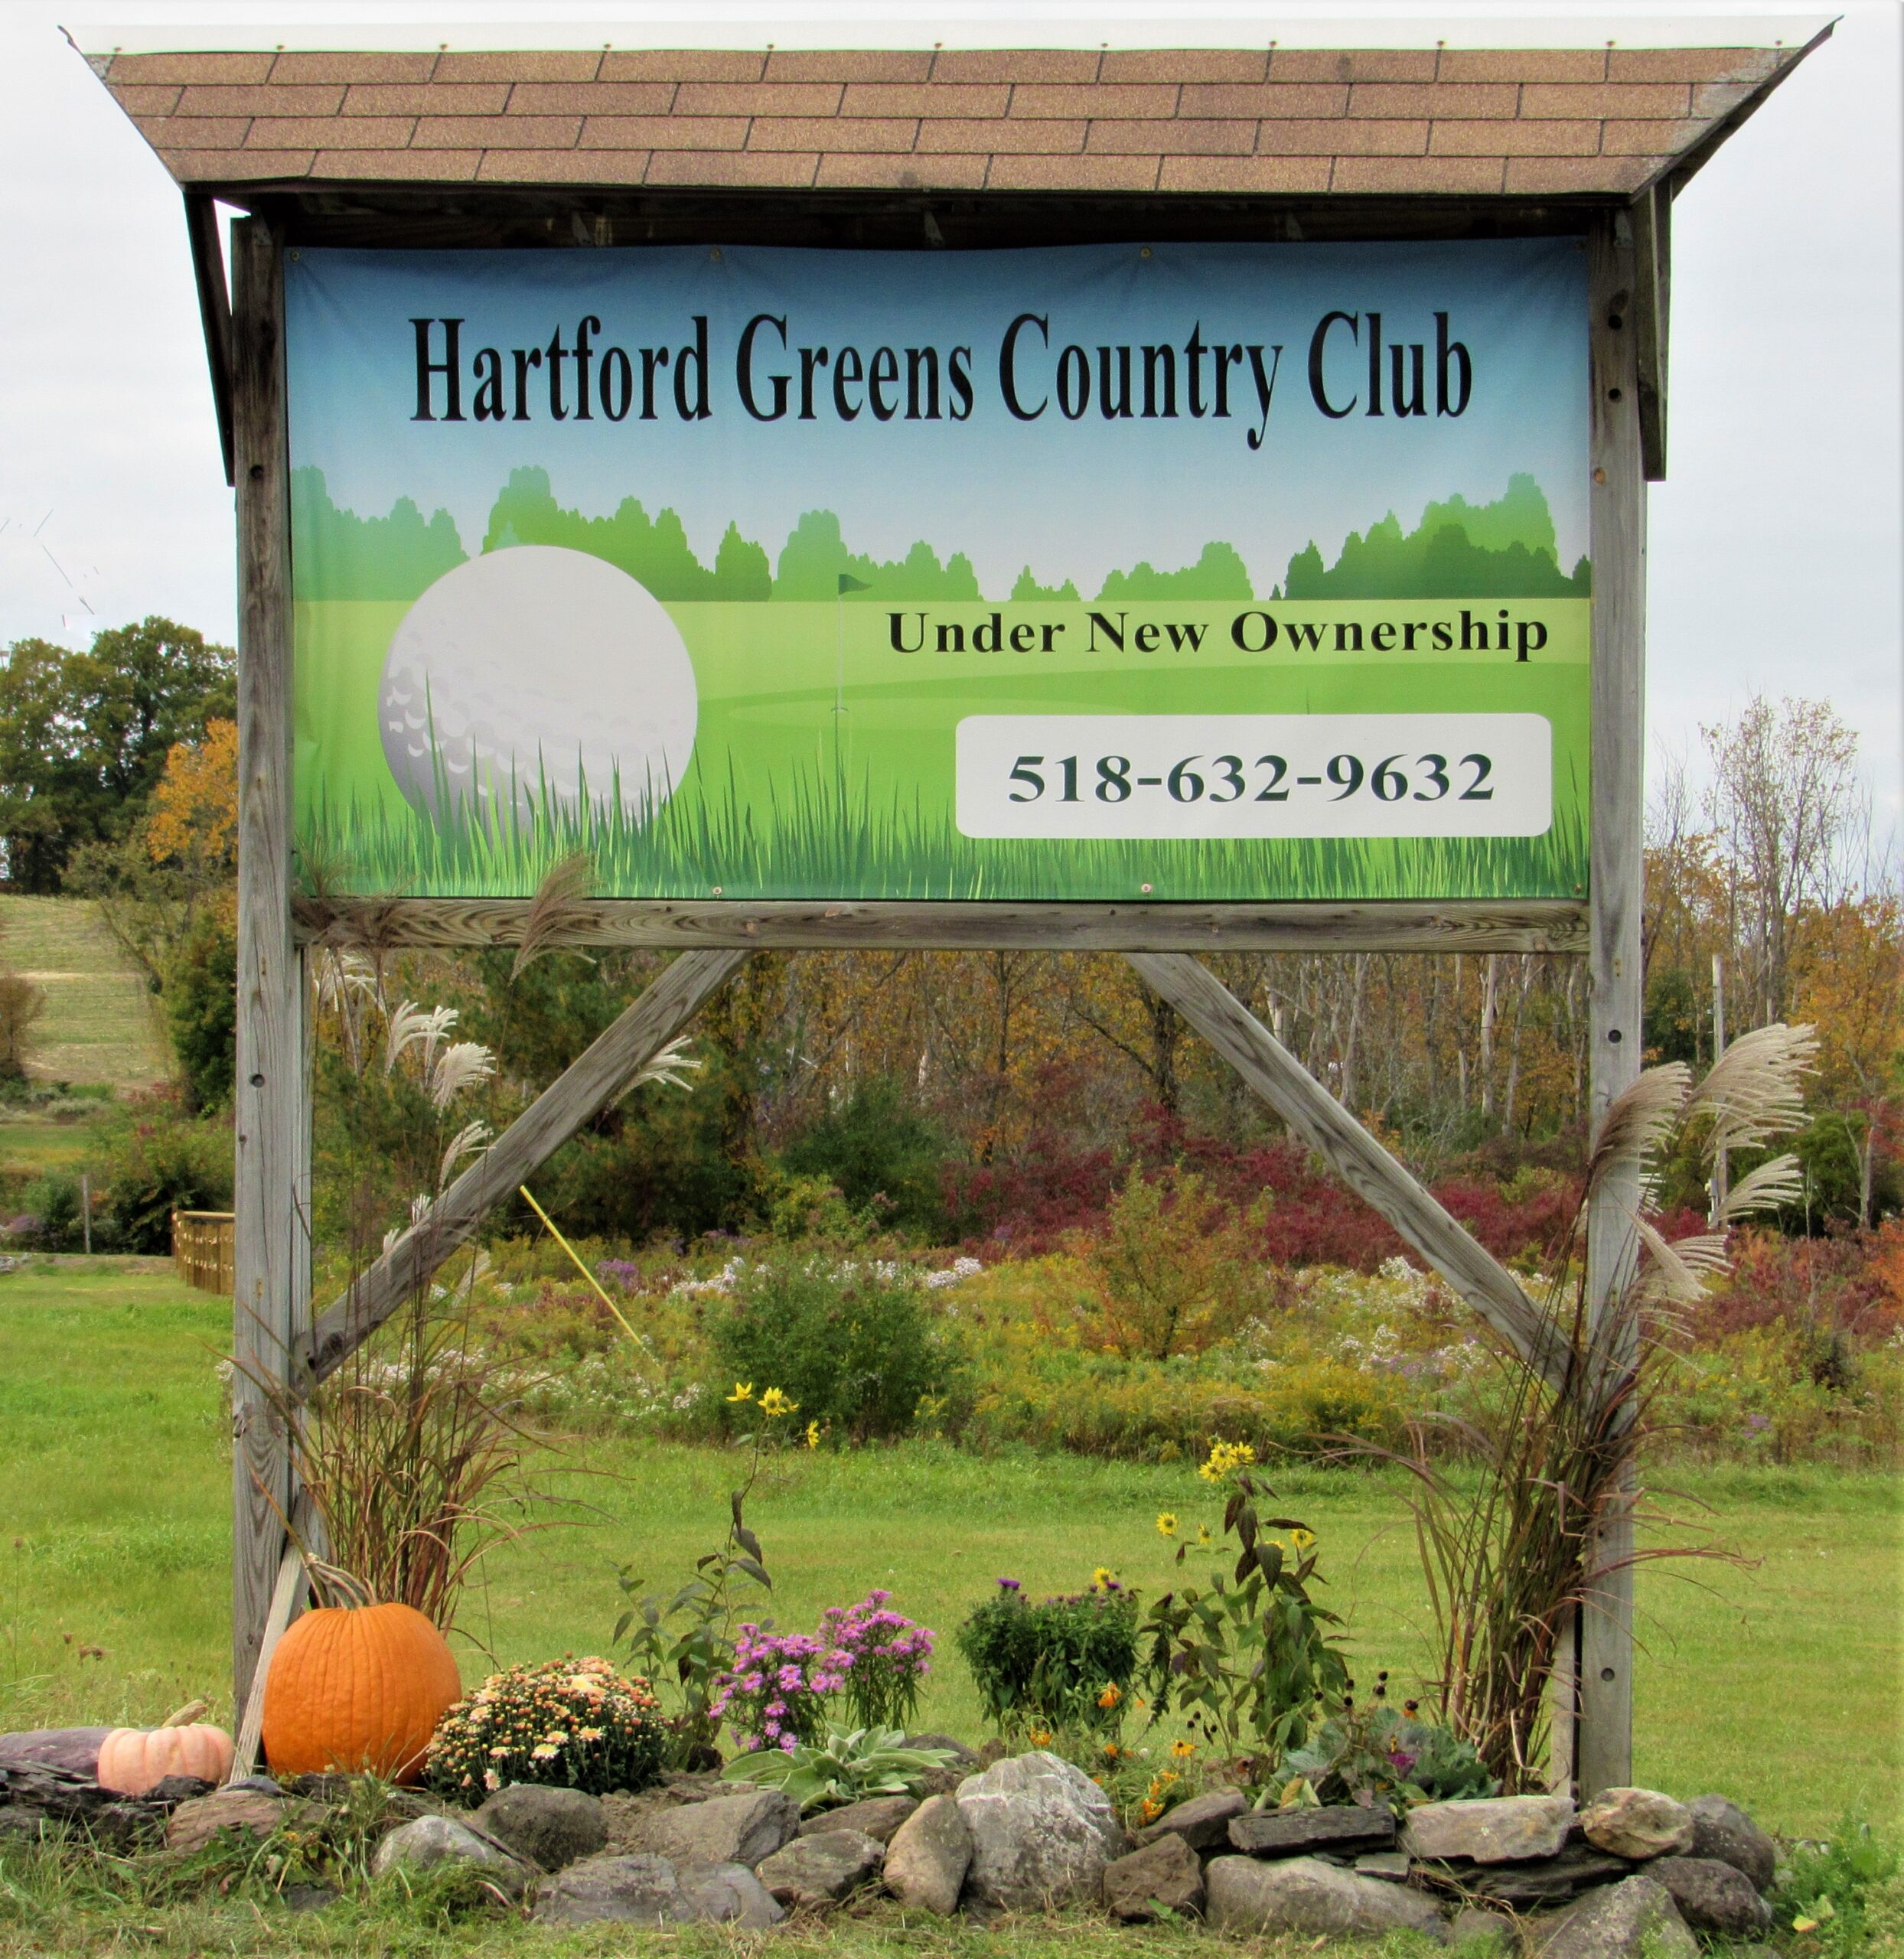 Autumn at Hartford Greens Country Club